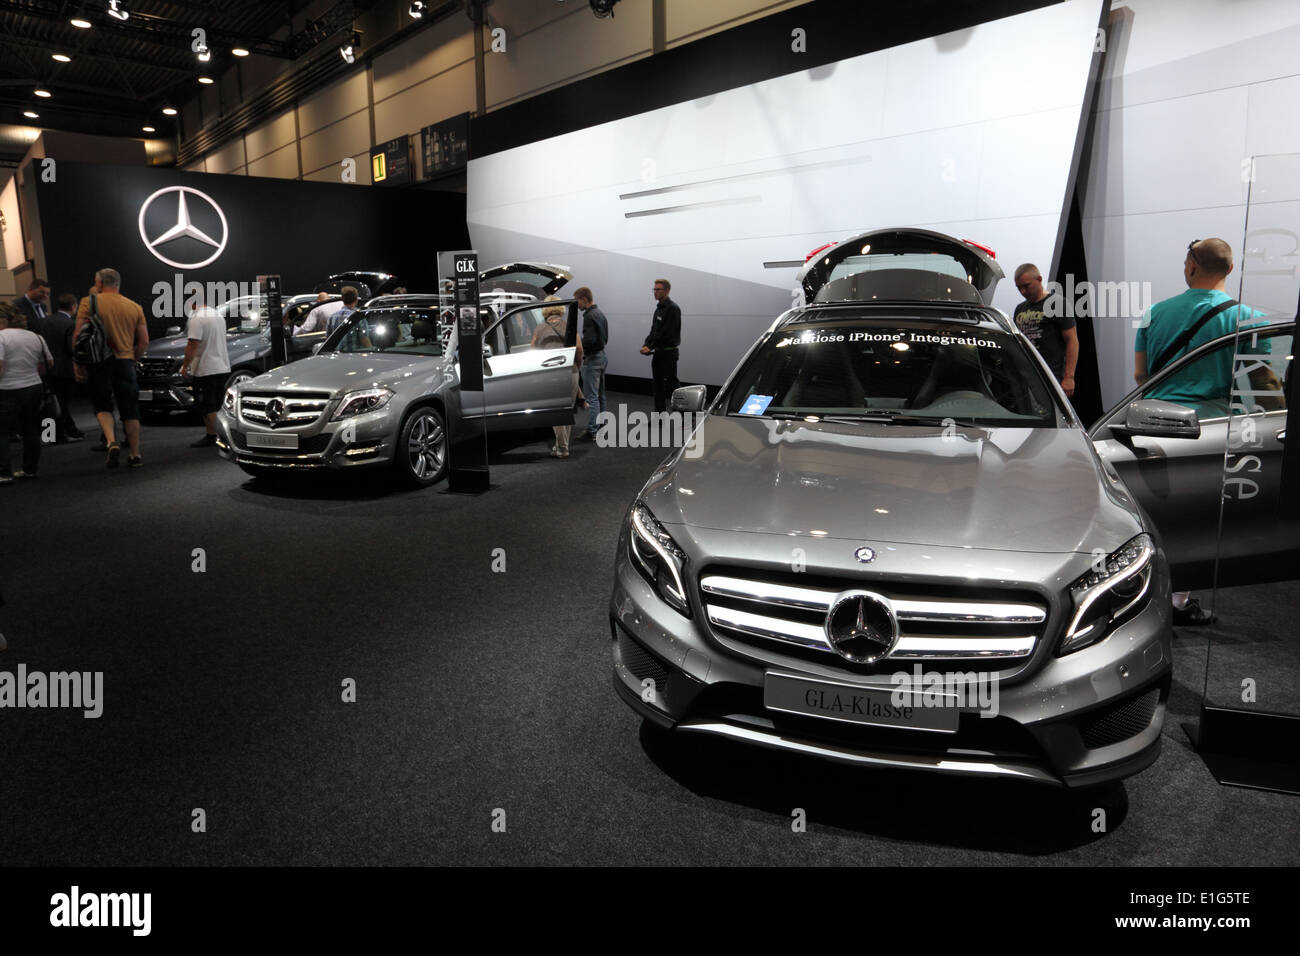 New Mercedes Benz GLA-Class at the AMI - Auto Mobile International Trade Fair on June 1st, 2014 in Leipzig, Saxony, Germany - Stock Image